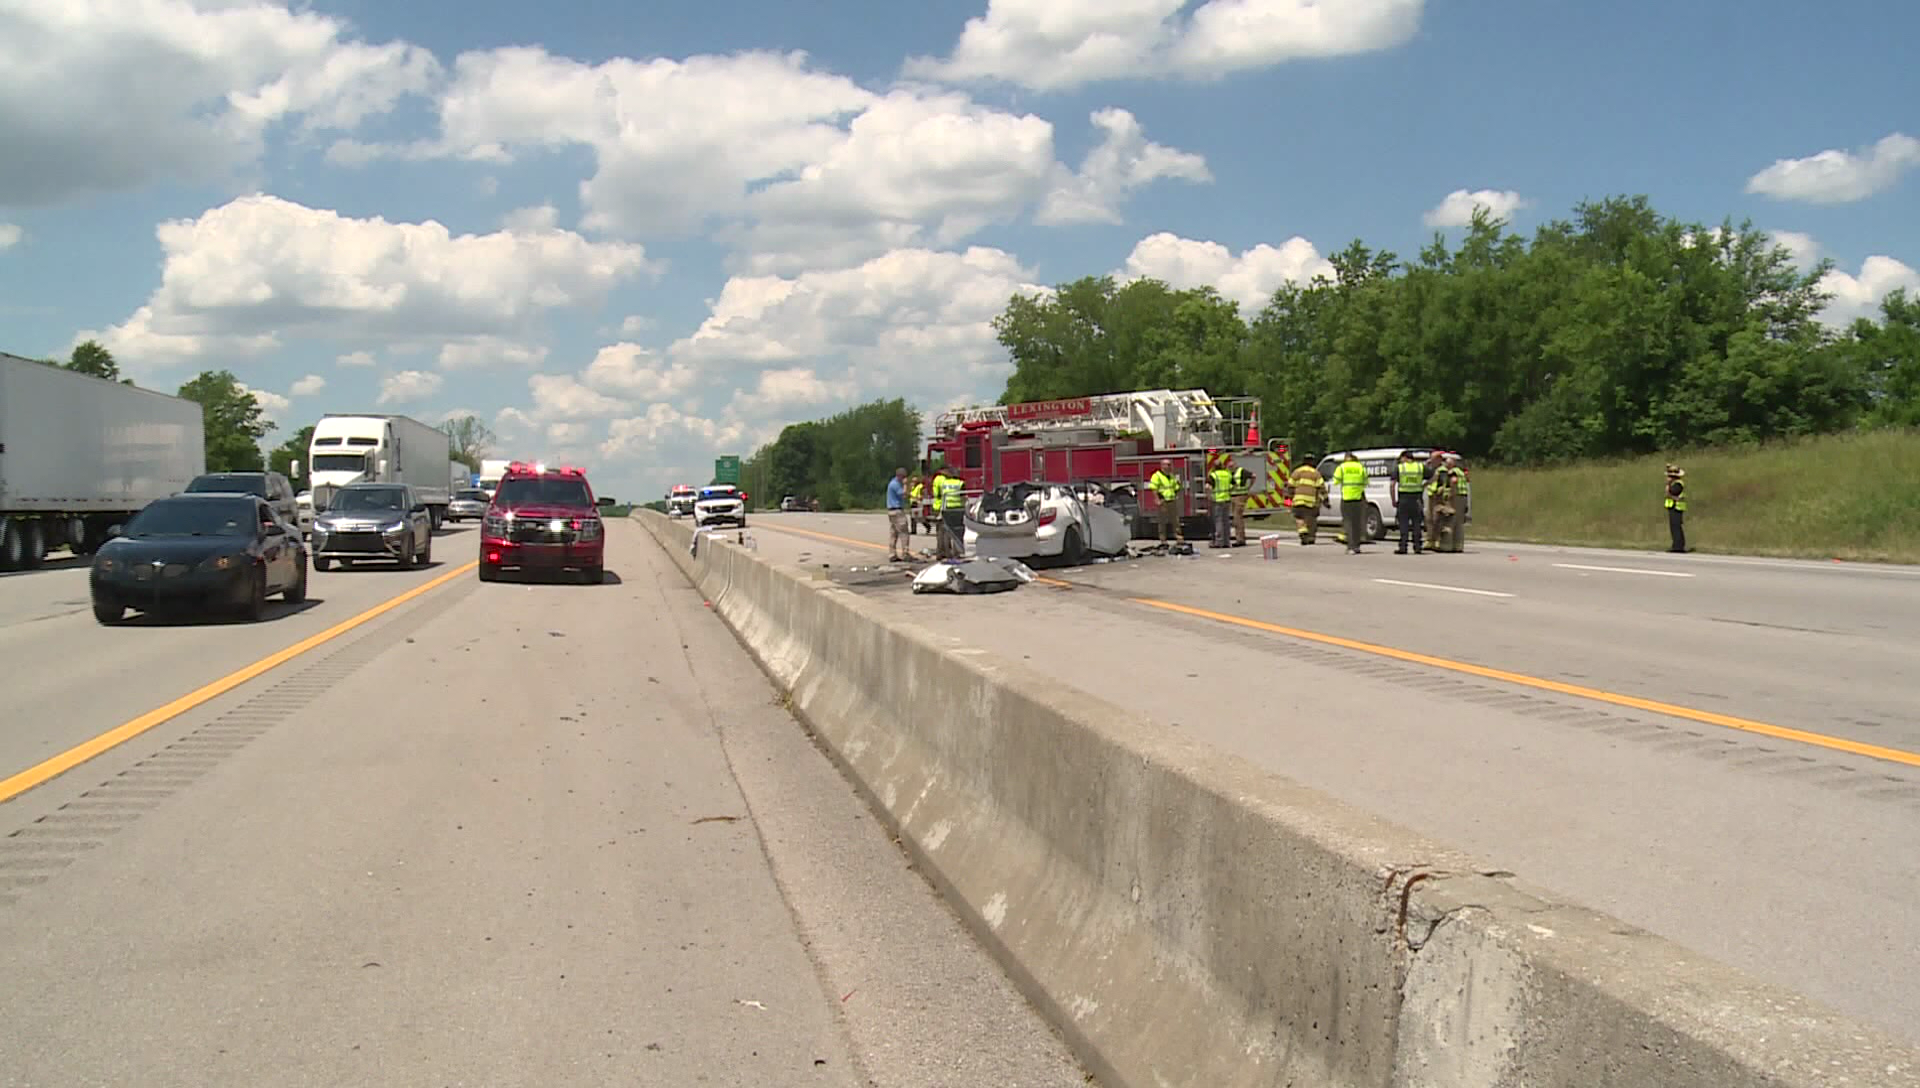 Six People Killed, Including Four Children, in Wrong-Way Crash on Kentucky Highway